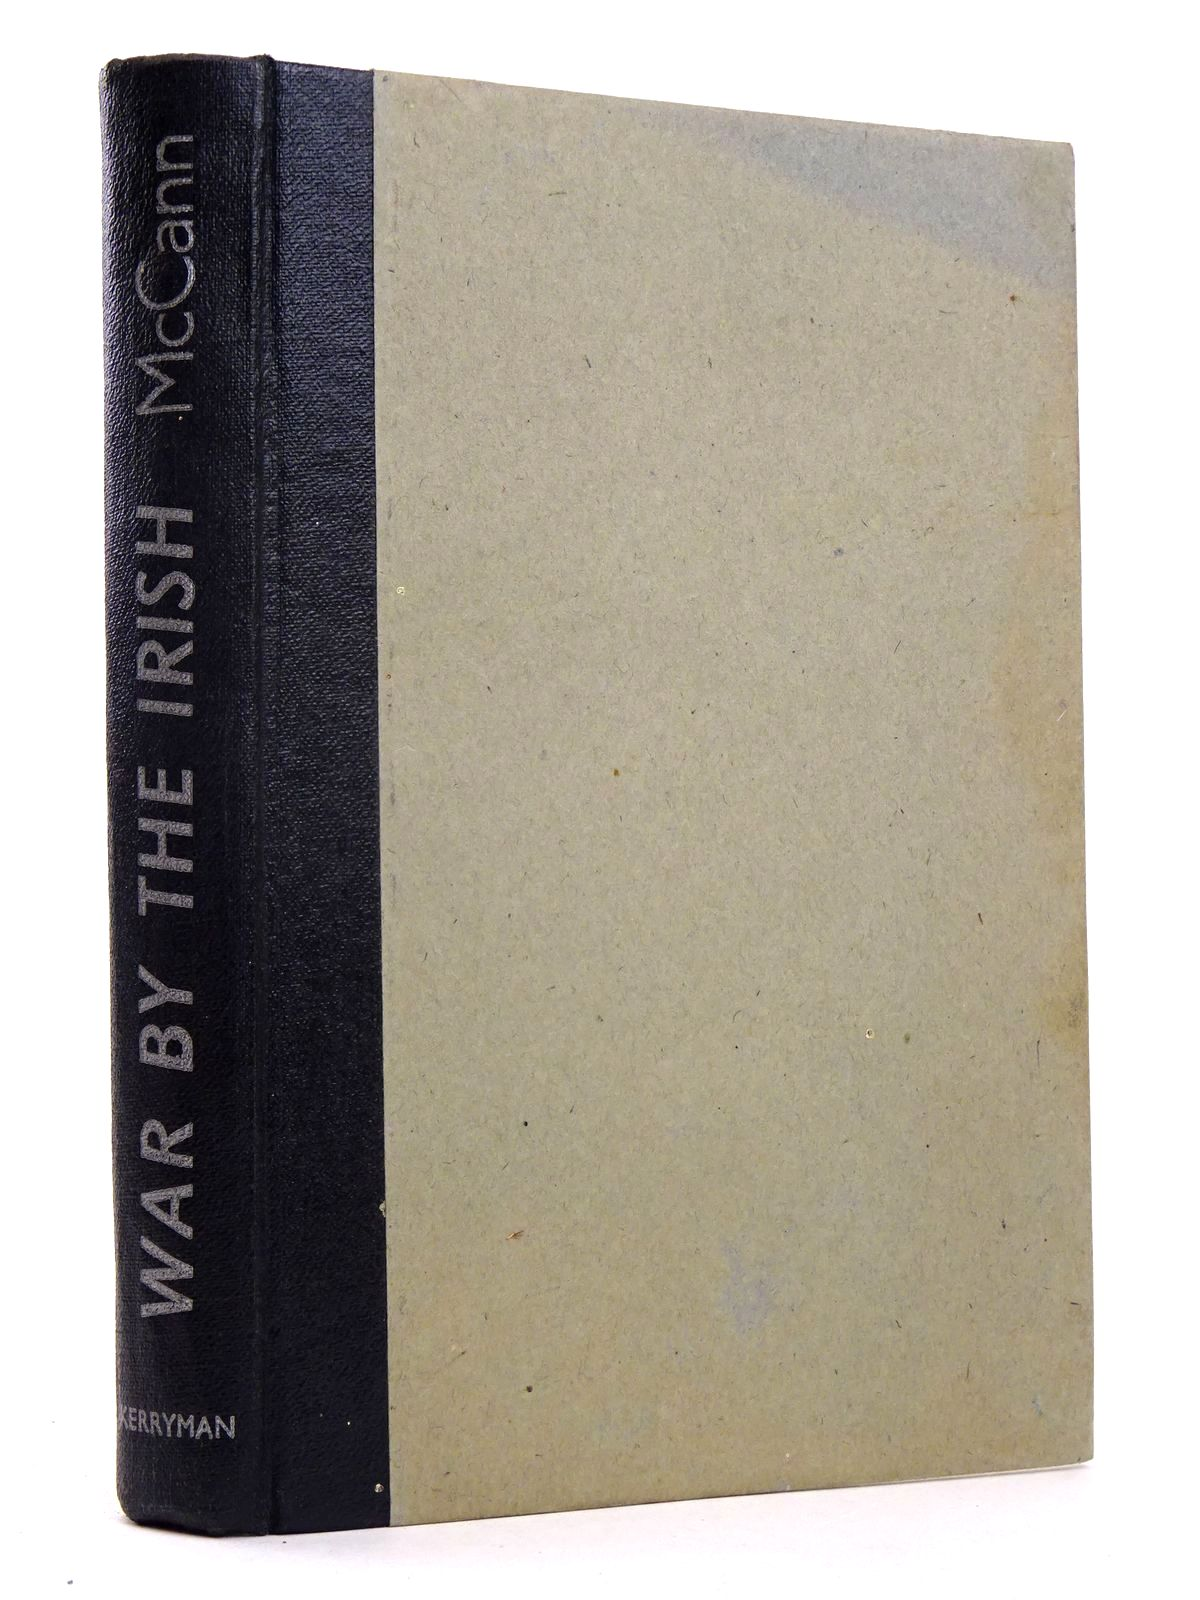 Photo of WAR BY THE IRISH written by McCann, John published by The Kerryman (STOCK CODE: 1818562)  for sale by Stella & Rose's Books